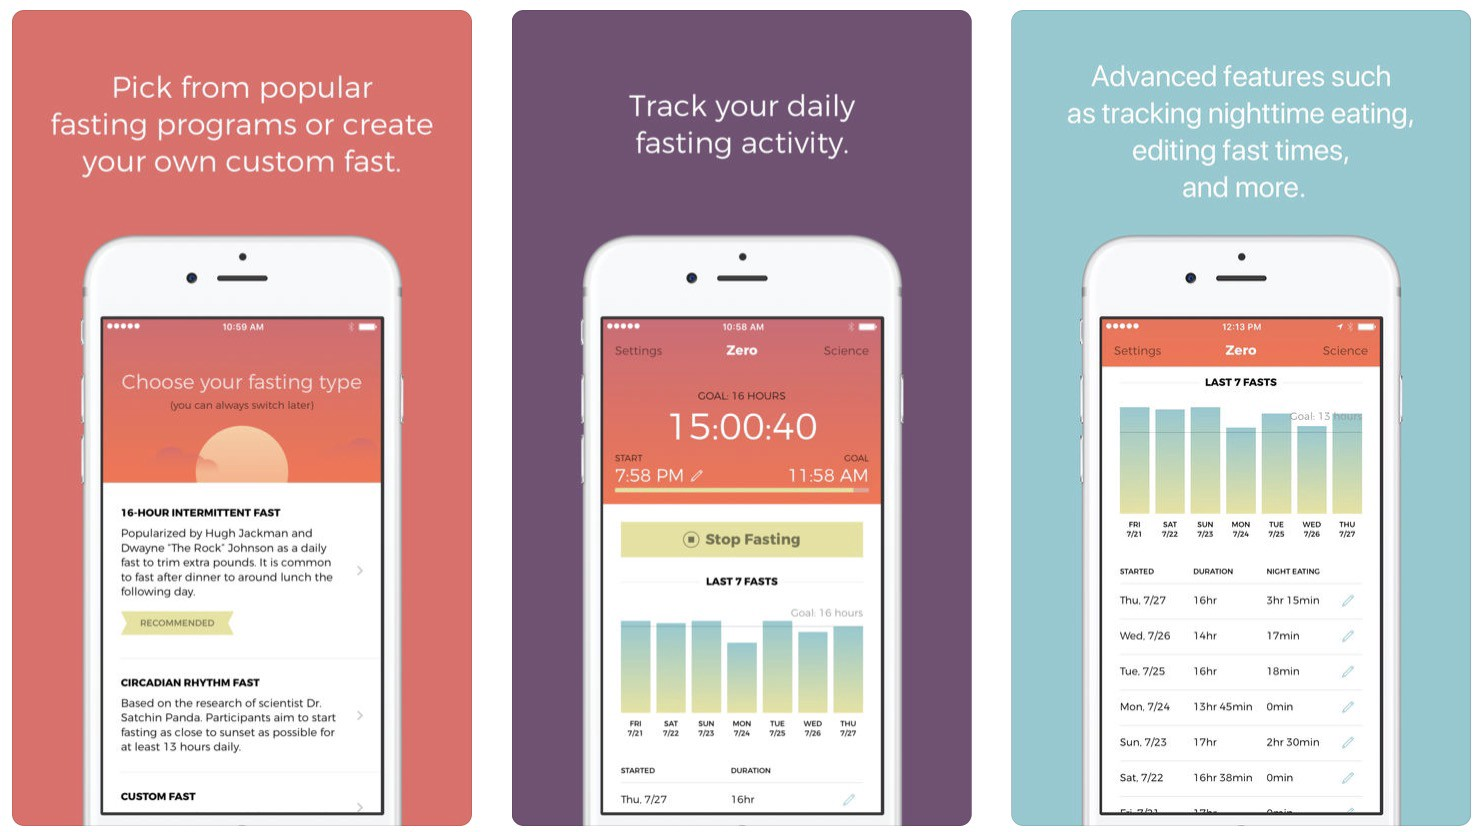 /how-zero-wins-product-analysis-of-the-fasting-tracker-d9d915b36977 feature image